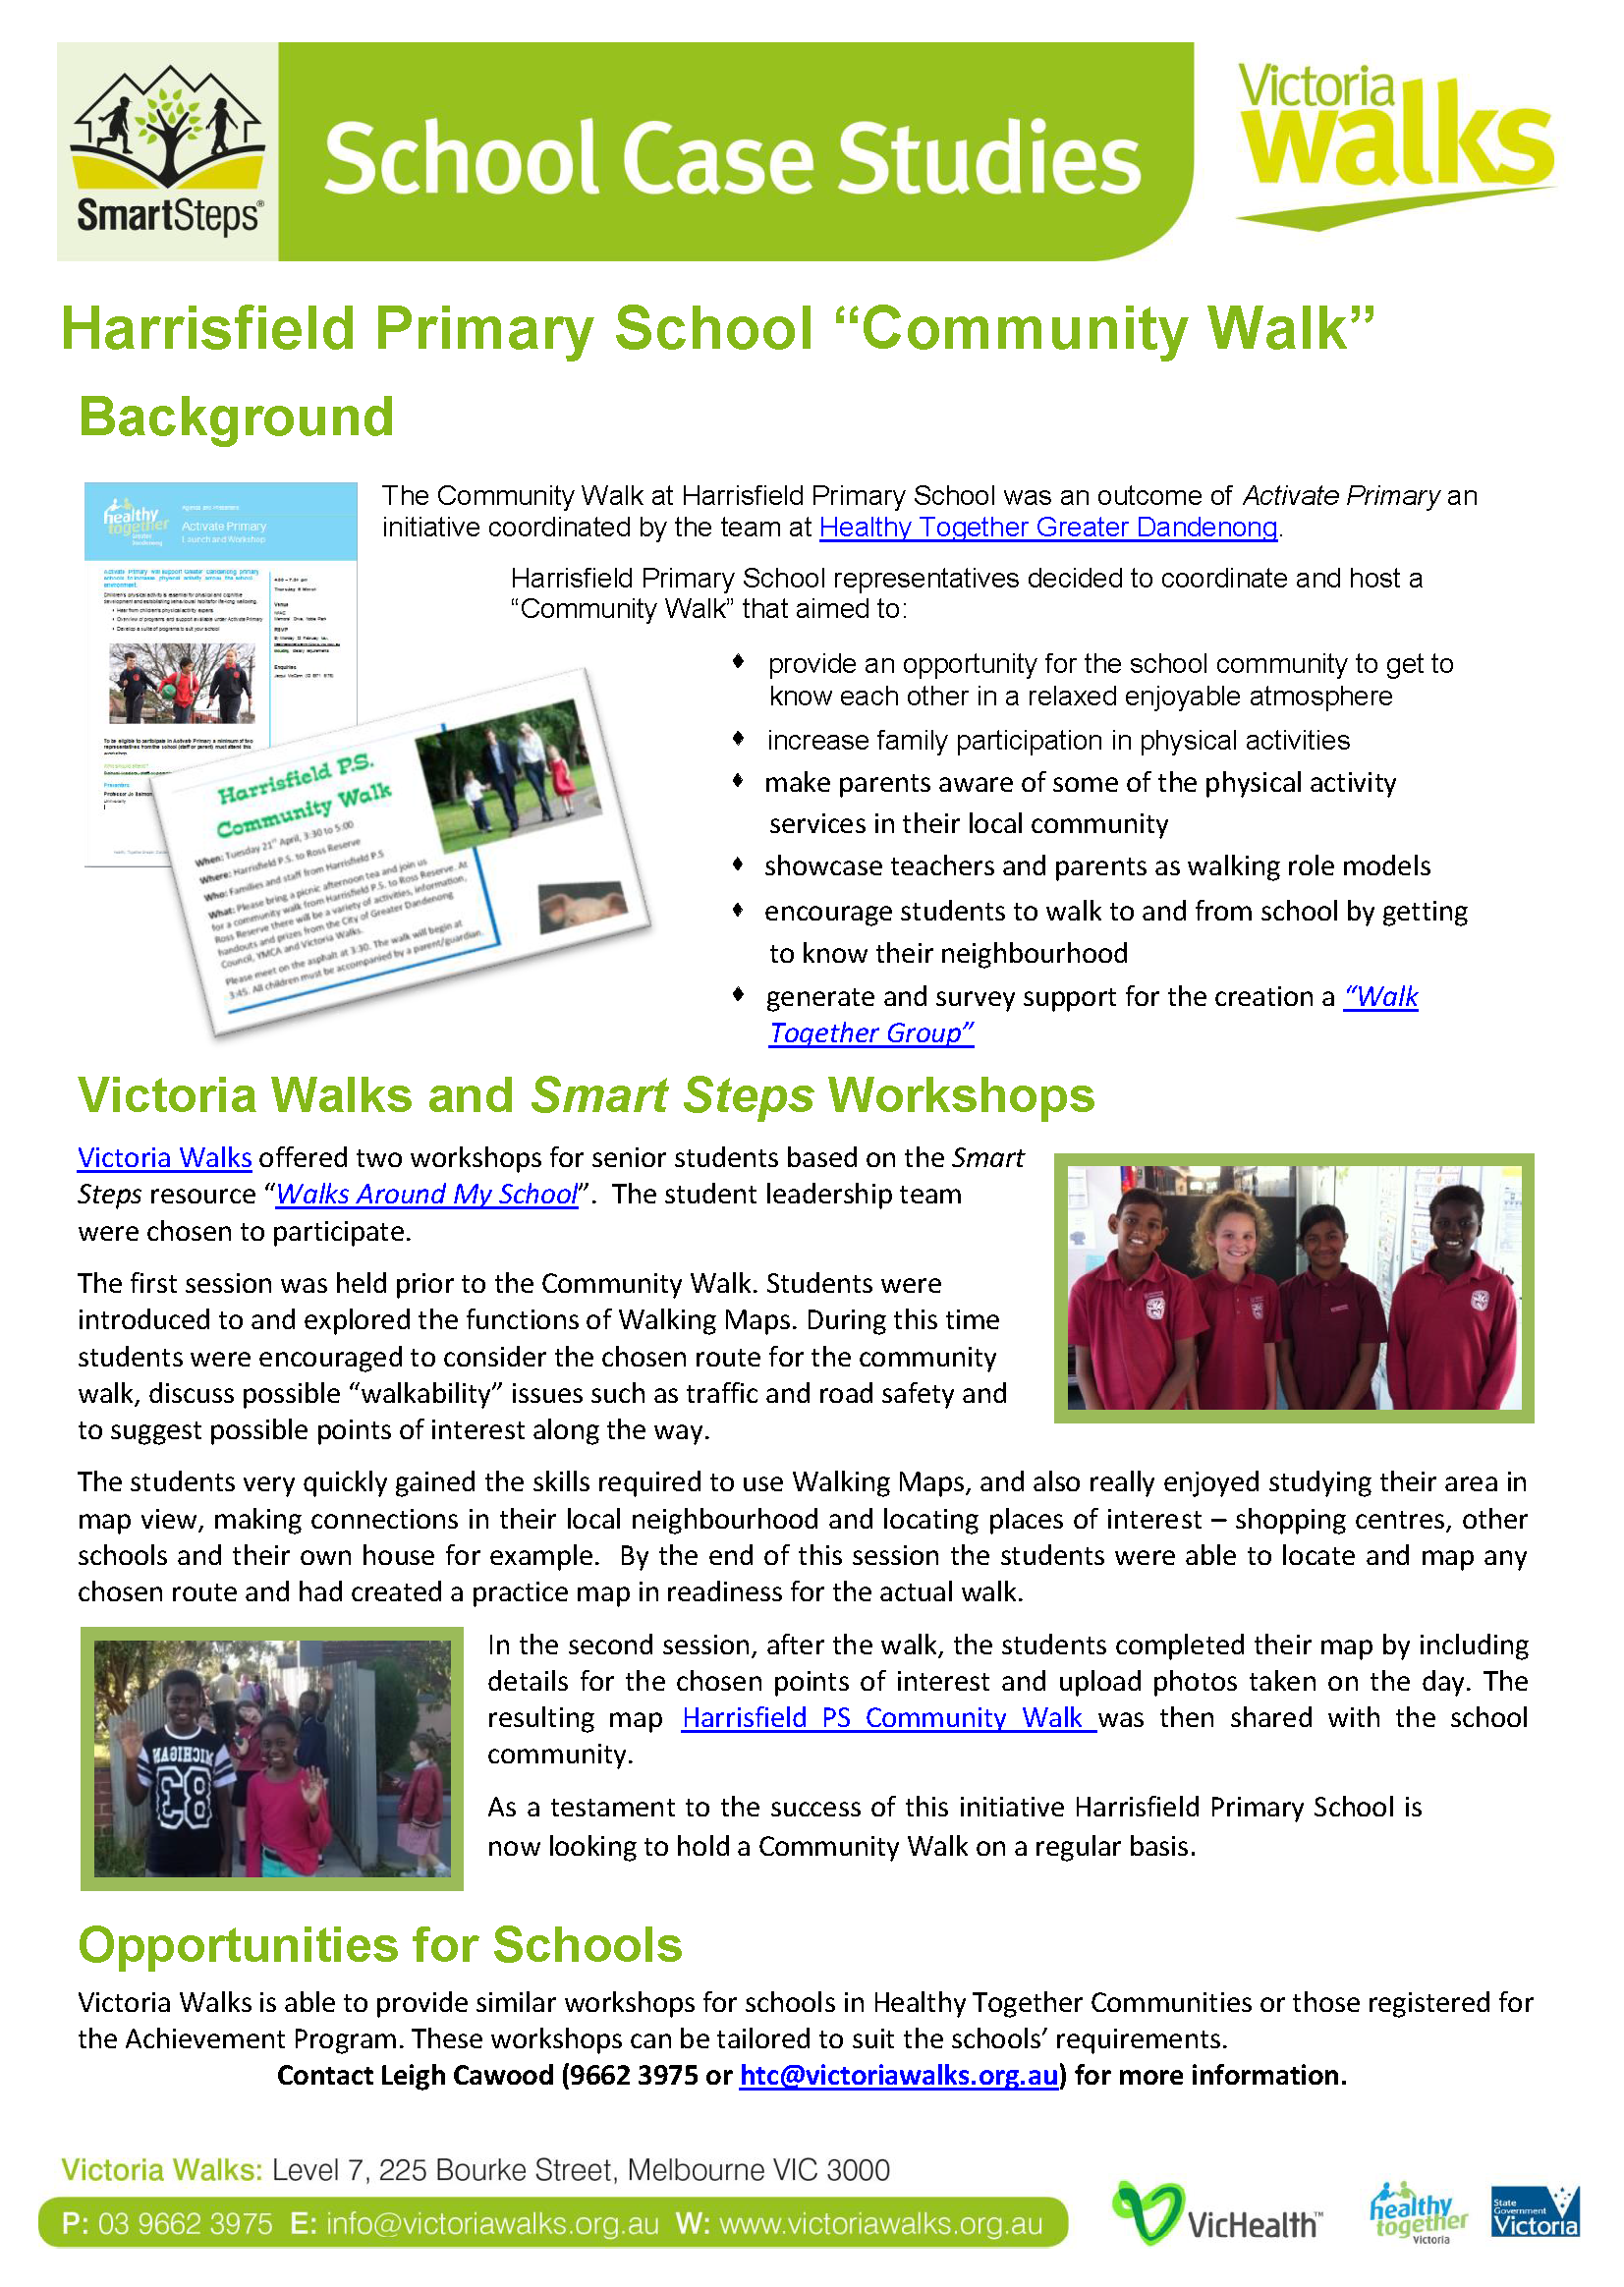 Harrisfield PS Community Walk Case Study